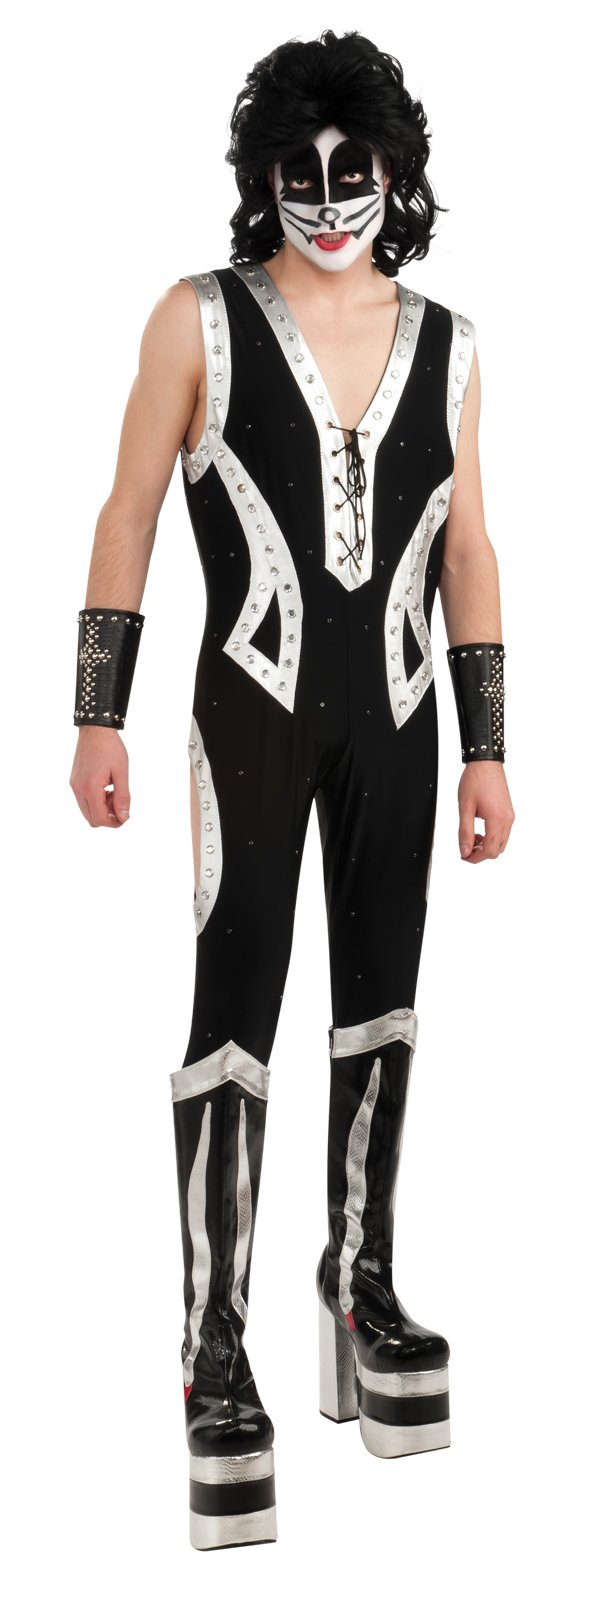 KISS - The Authentic Catman Adult Costume